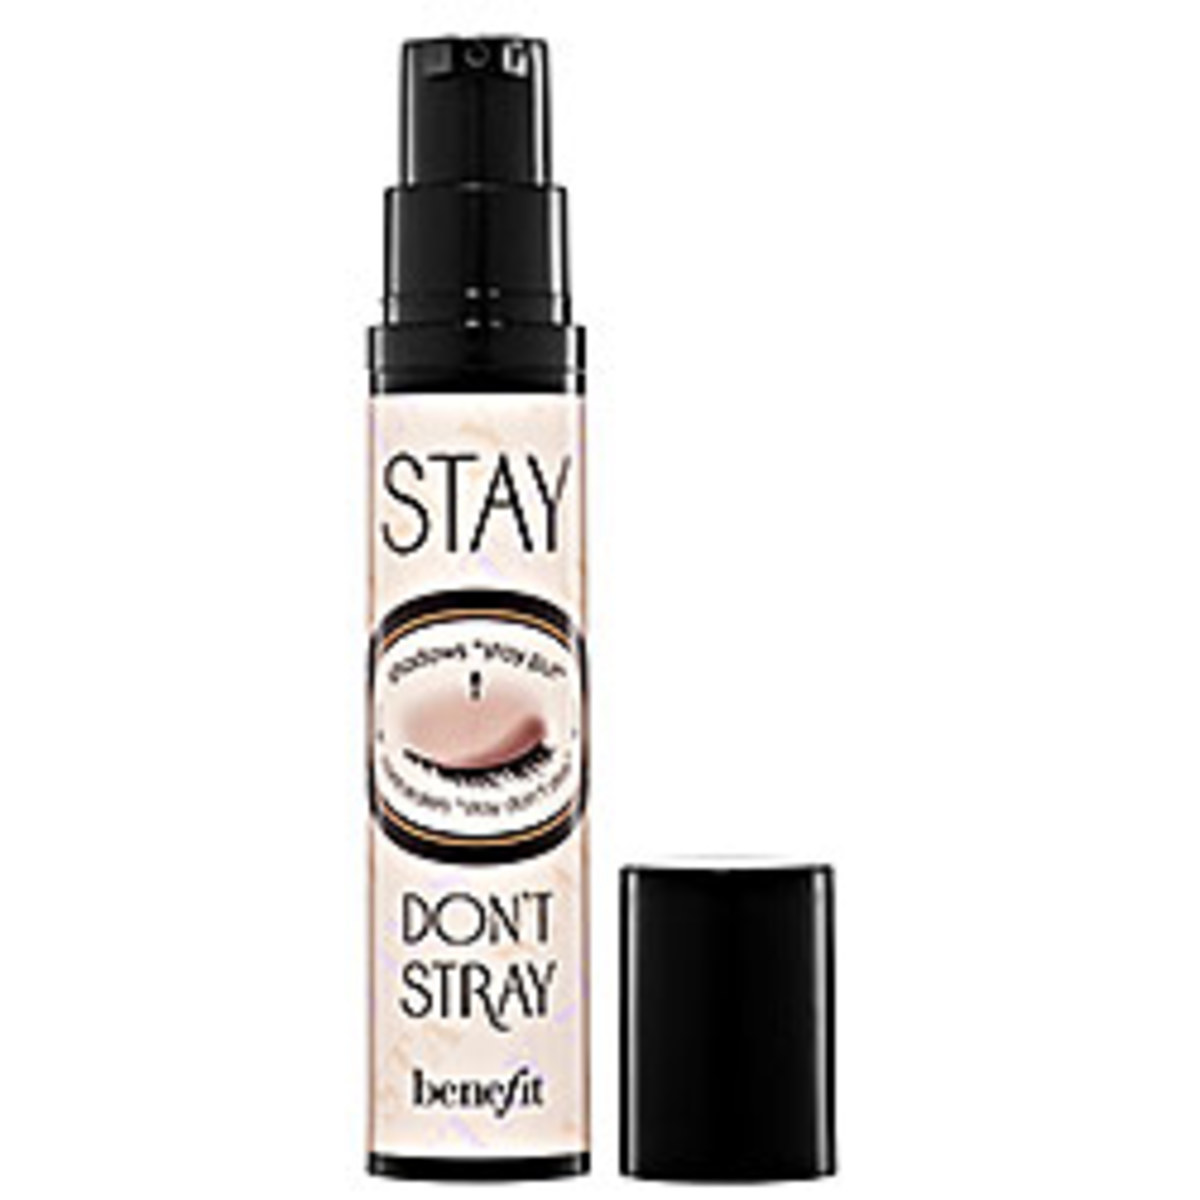 benefit-stay-dont-stray-stay-put-primer